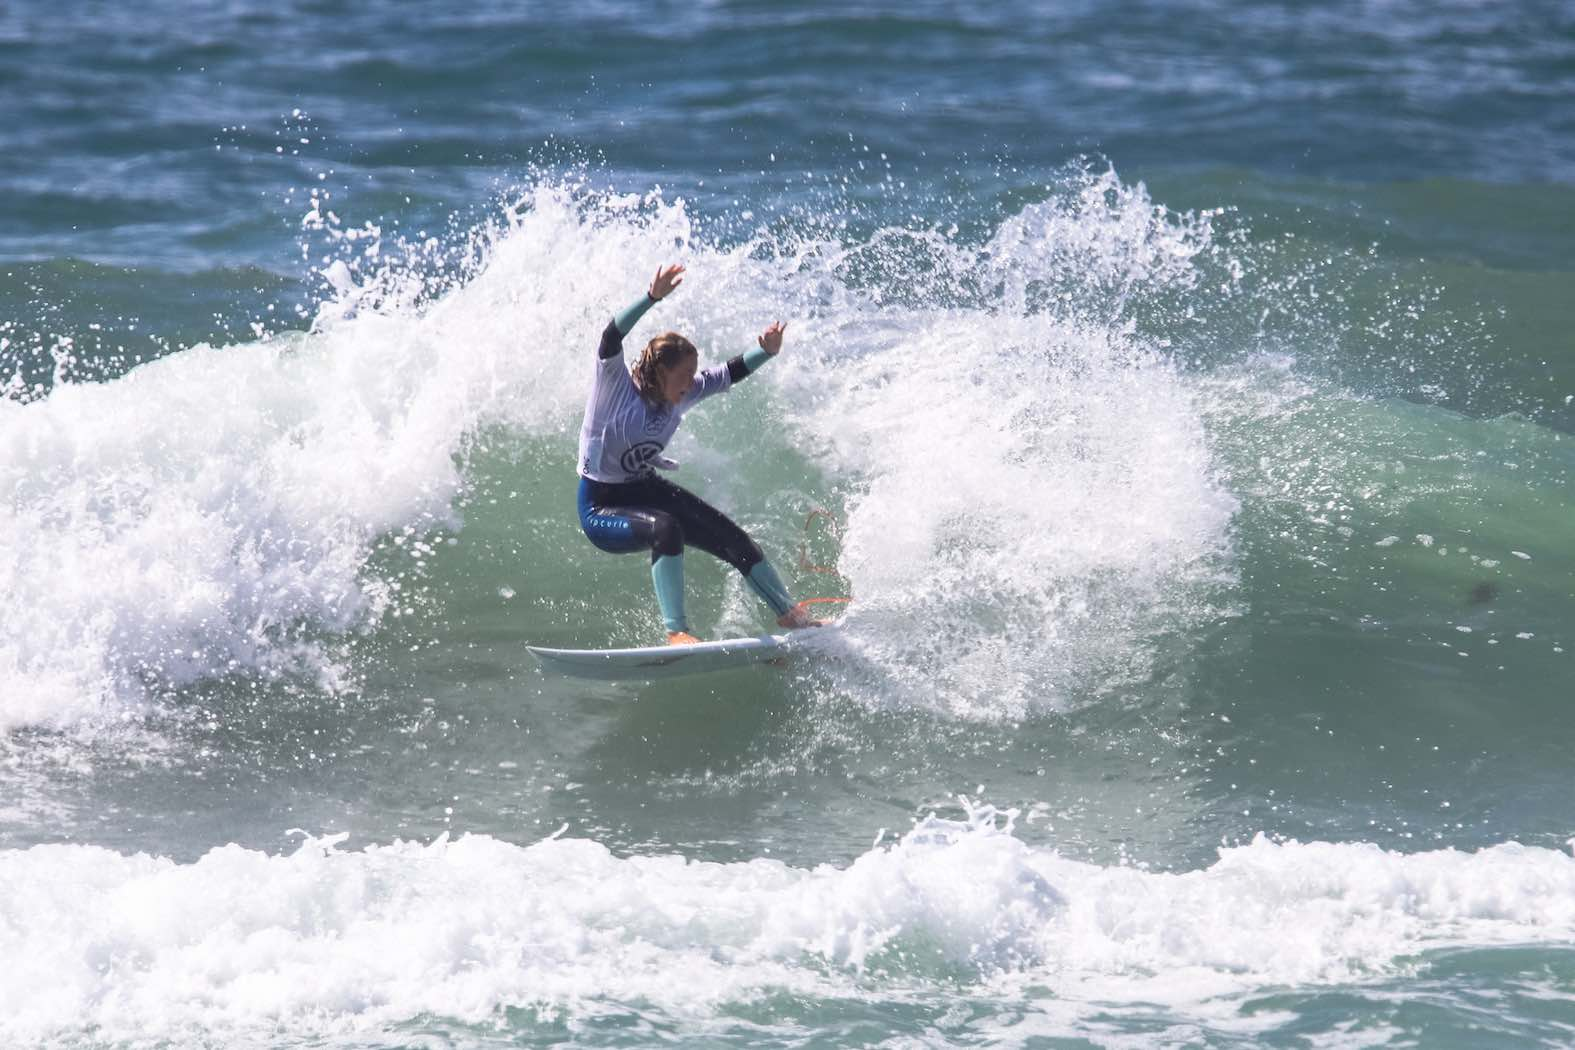 Kai Woolf surfing her way to victory at the Volkswagen Nelson Mandela Bay Surf Pro